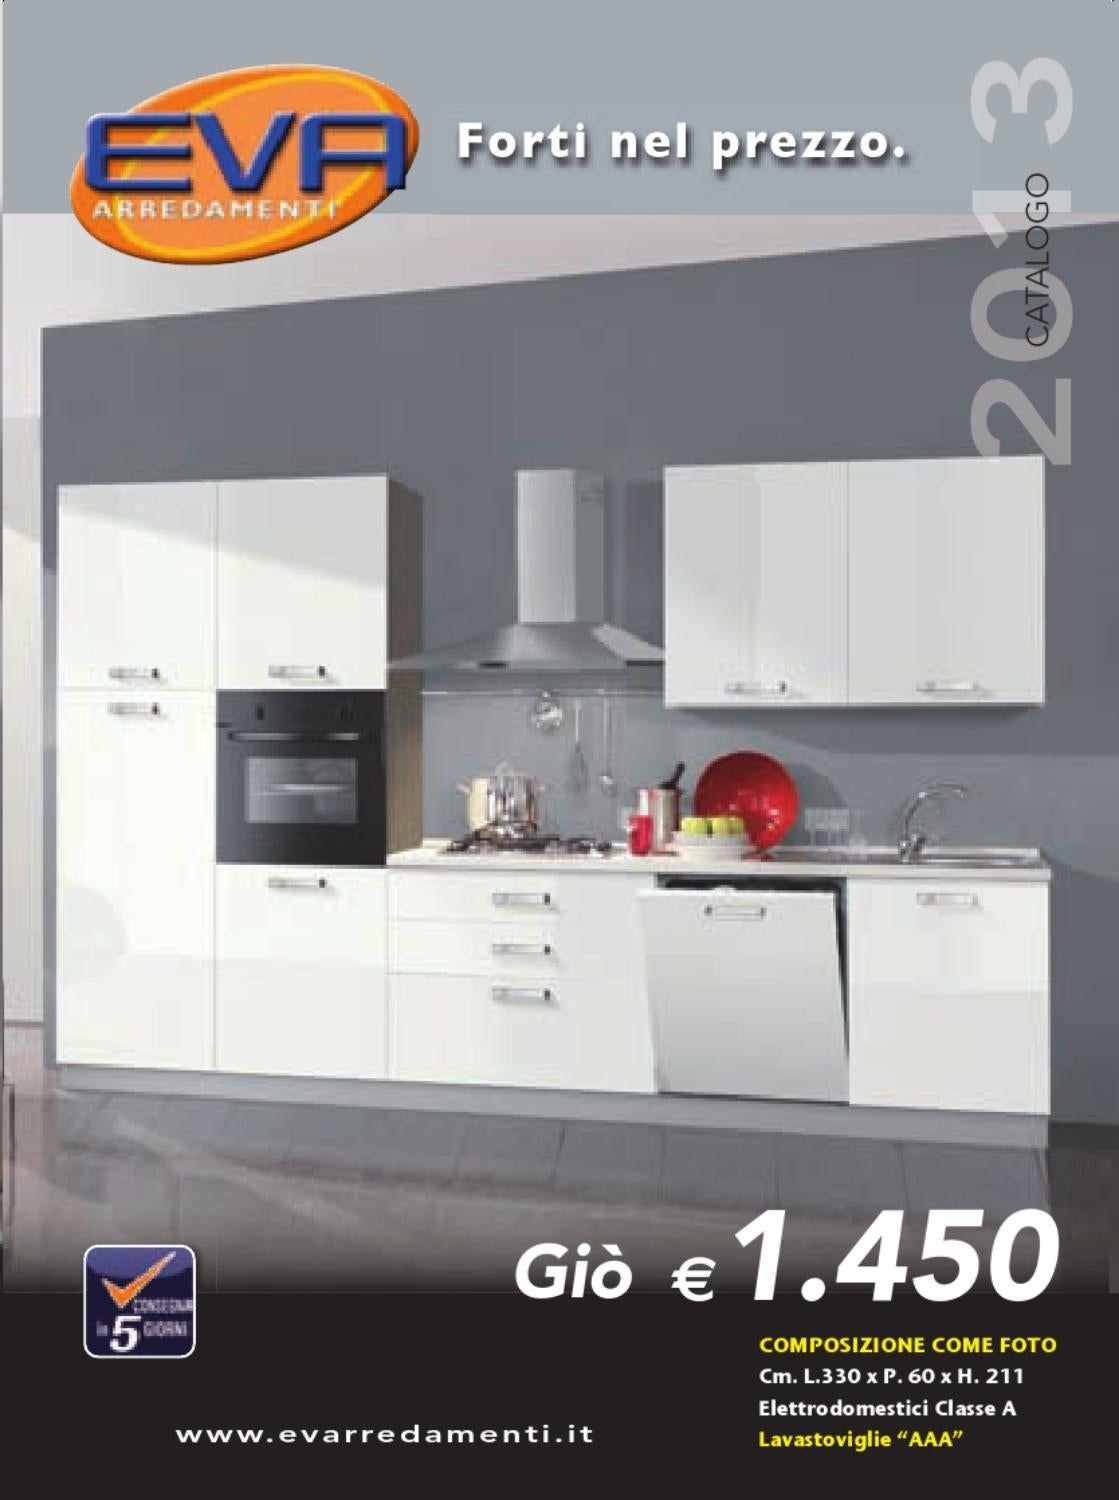 Catalogo 2013 eva arredamenti by mobil clam s r l issuu for Cucina eva mondo convenienza